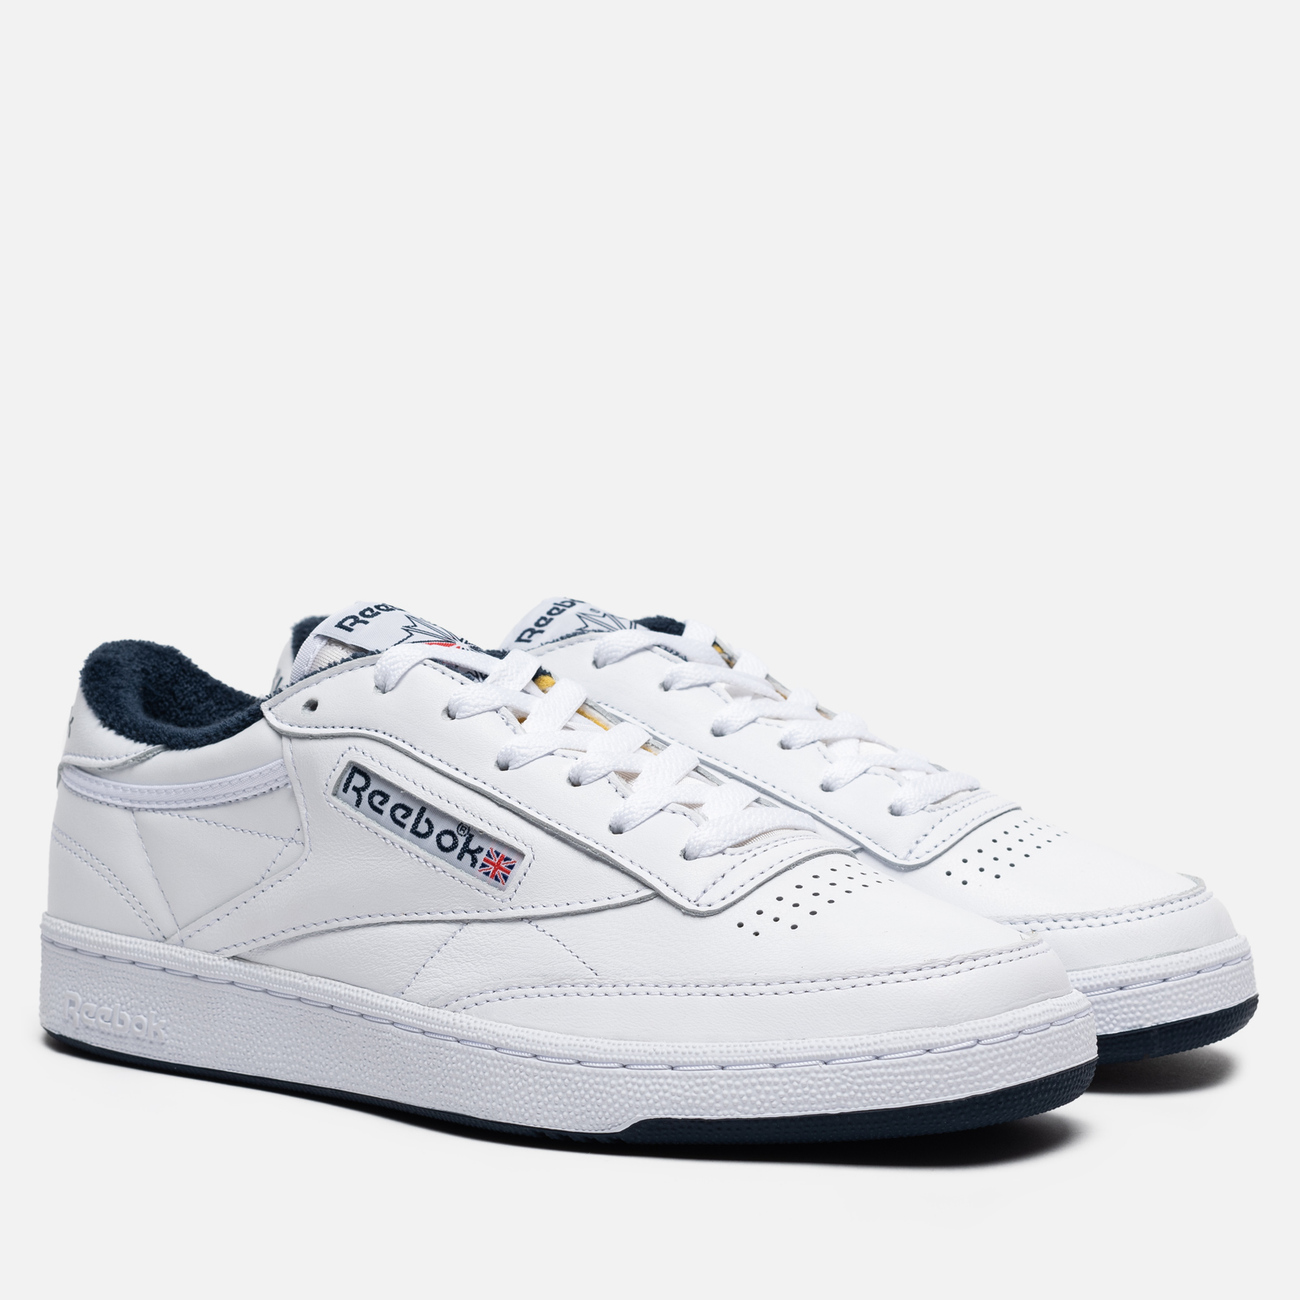 Кроссовки Reebok Club C 85 35th Anniversary White/White/Collegiate Navy